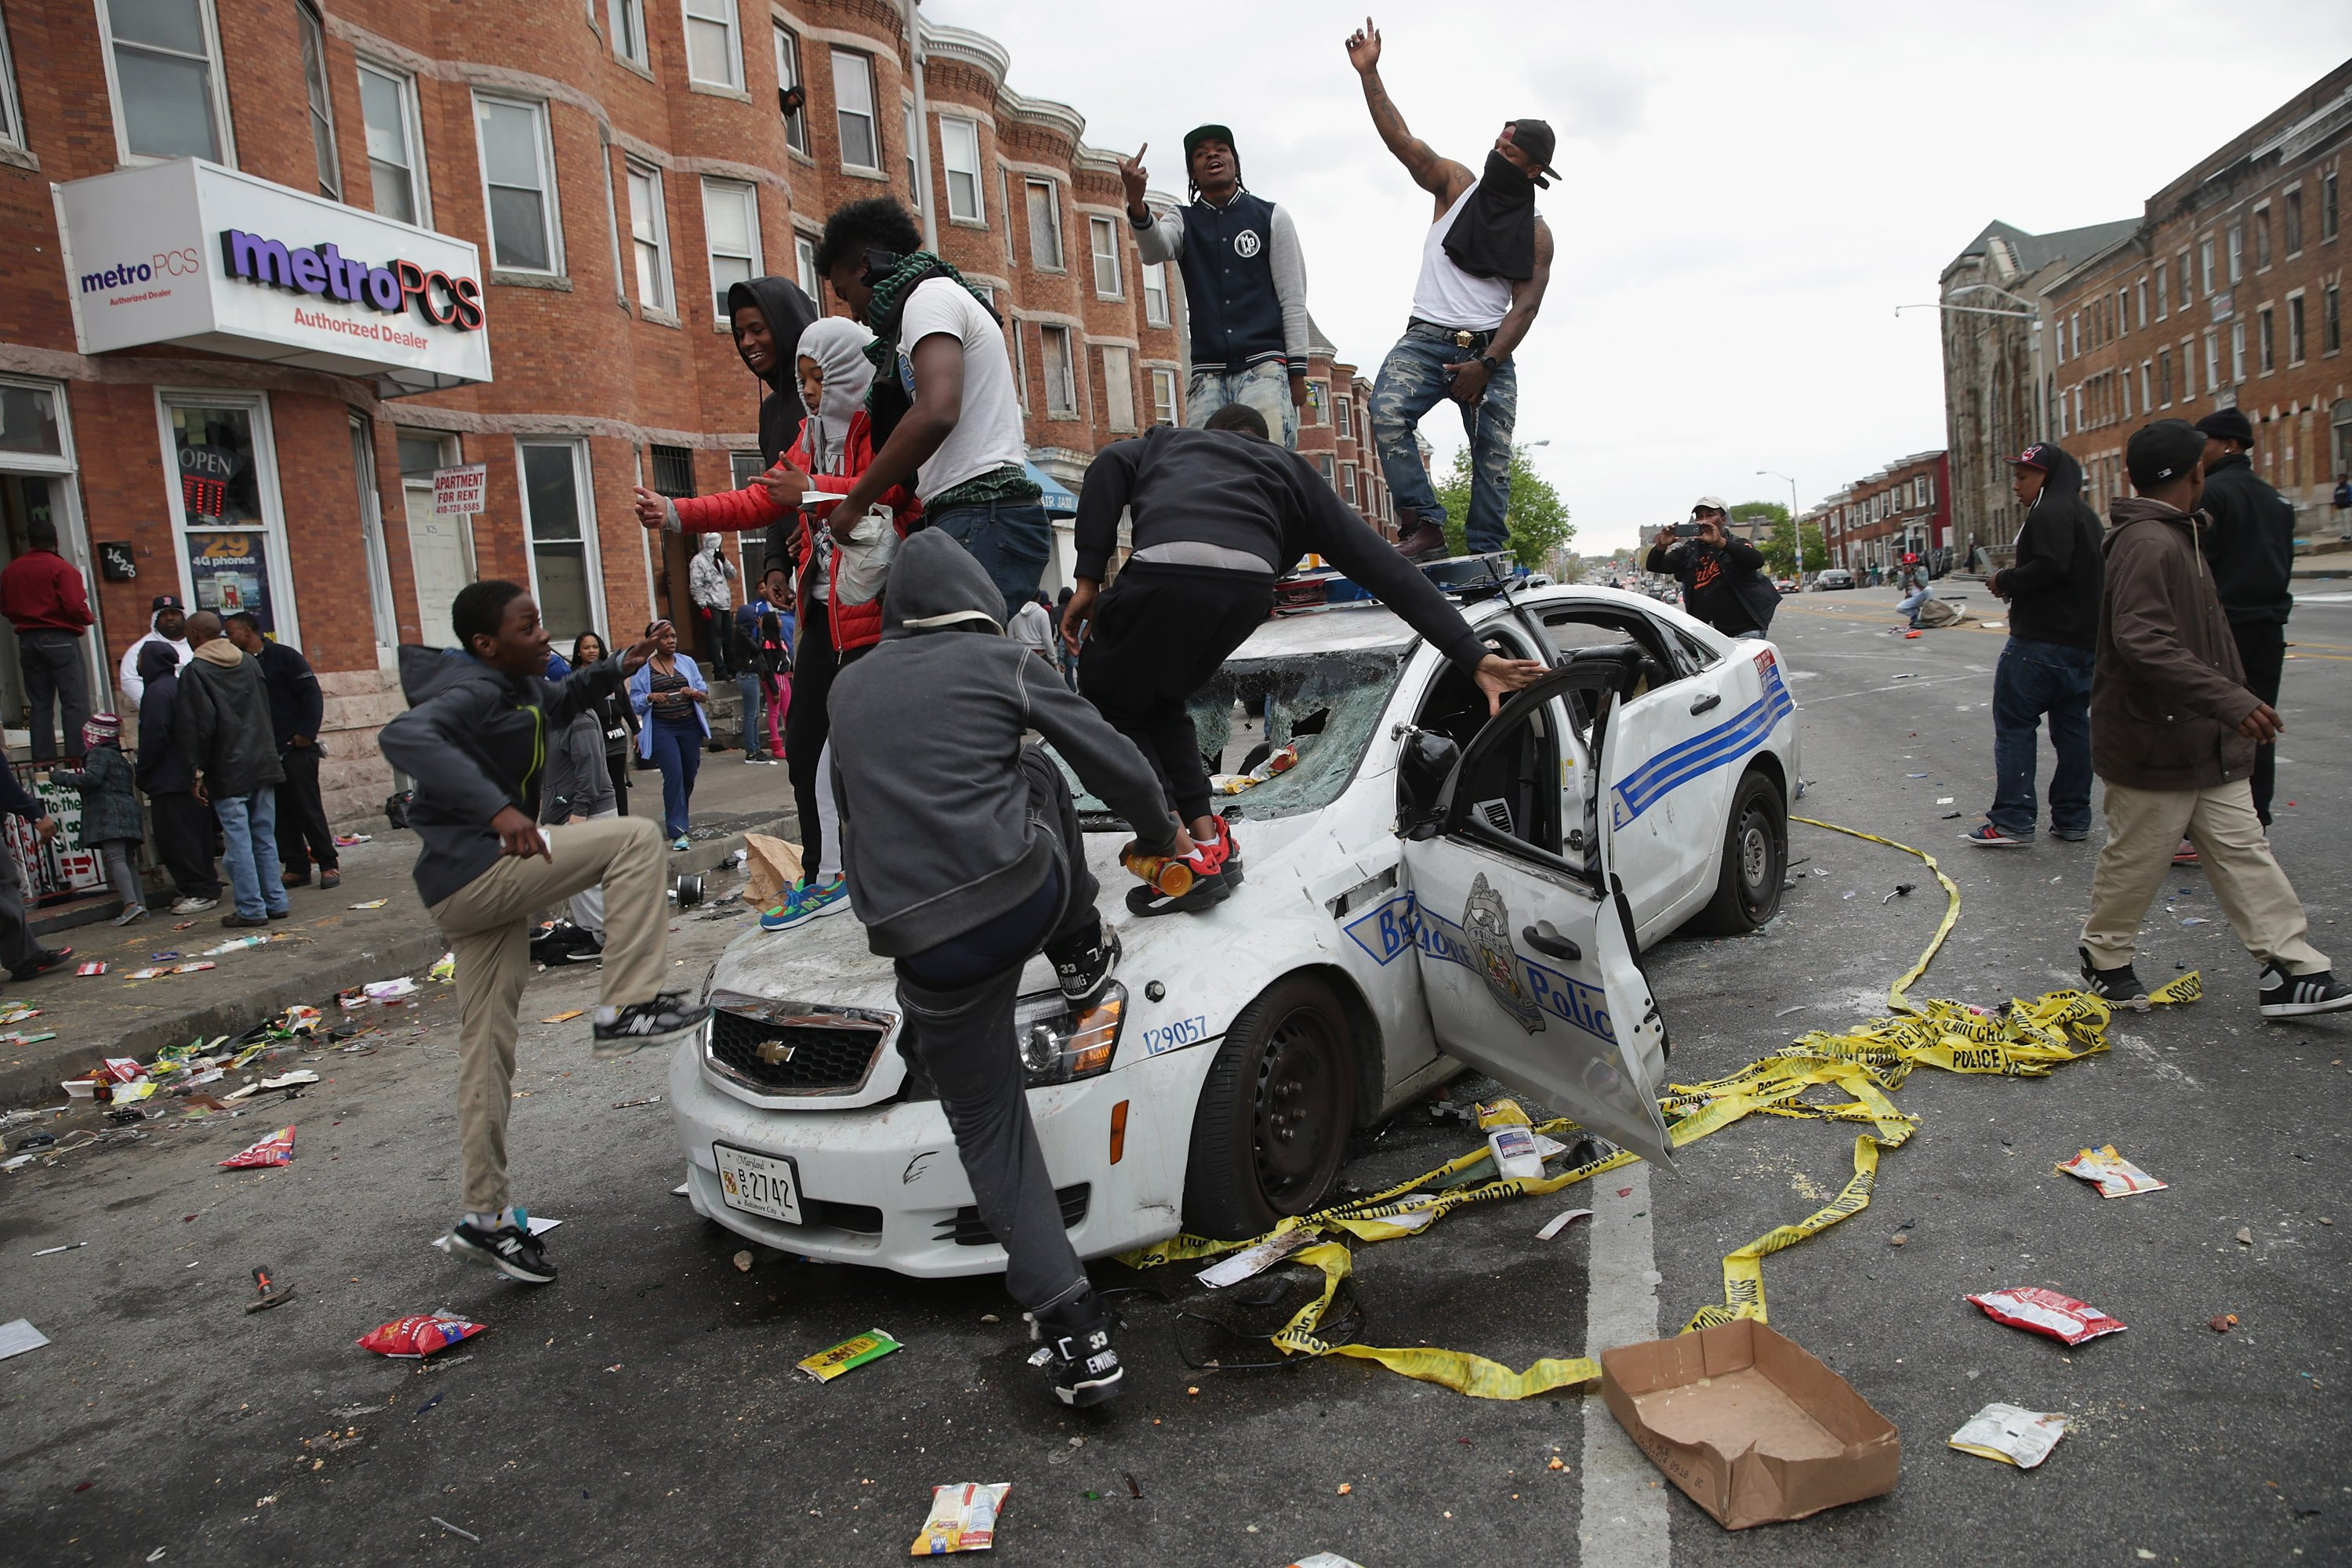 Demonstrators climb on a destroyed Baltimore Police car in the street near the corner of Pennsylvania and North avenues during violent protests following the funeral of Freddie Gray in Baltimore on April 27, 2015.